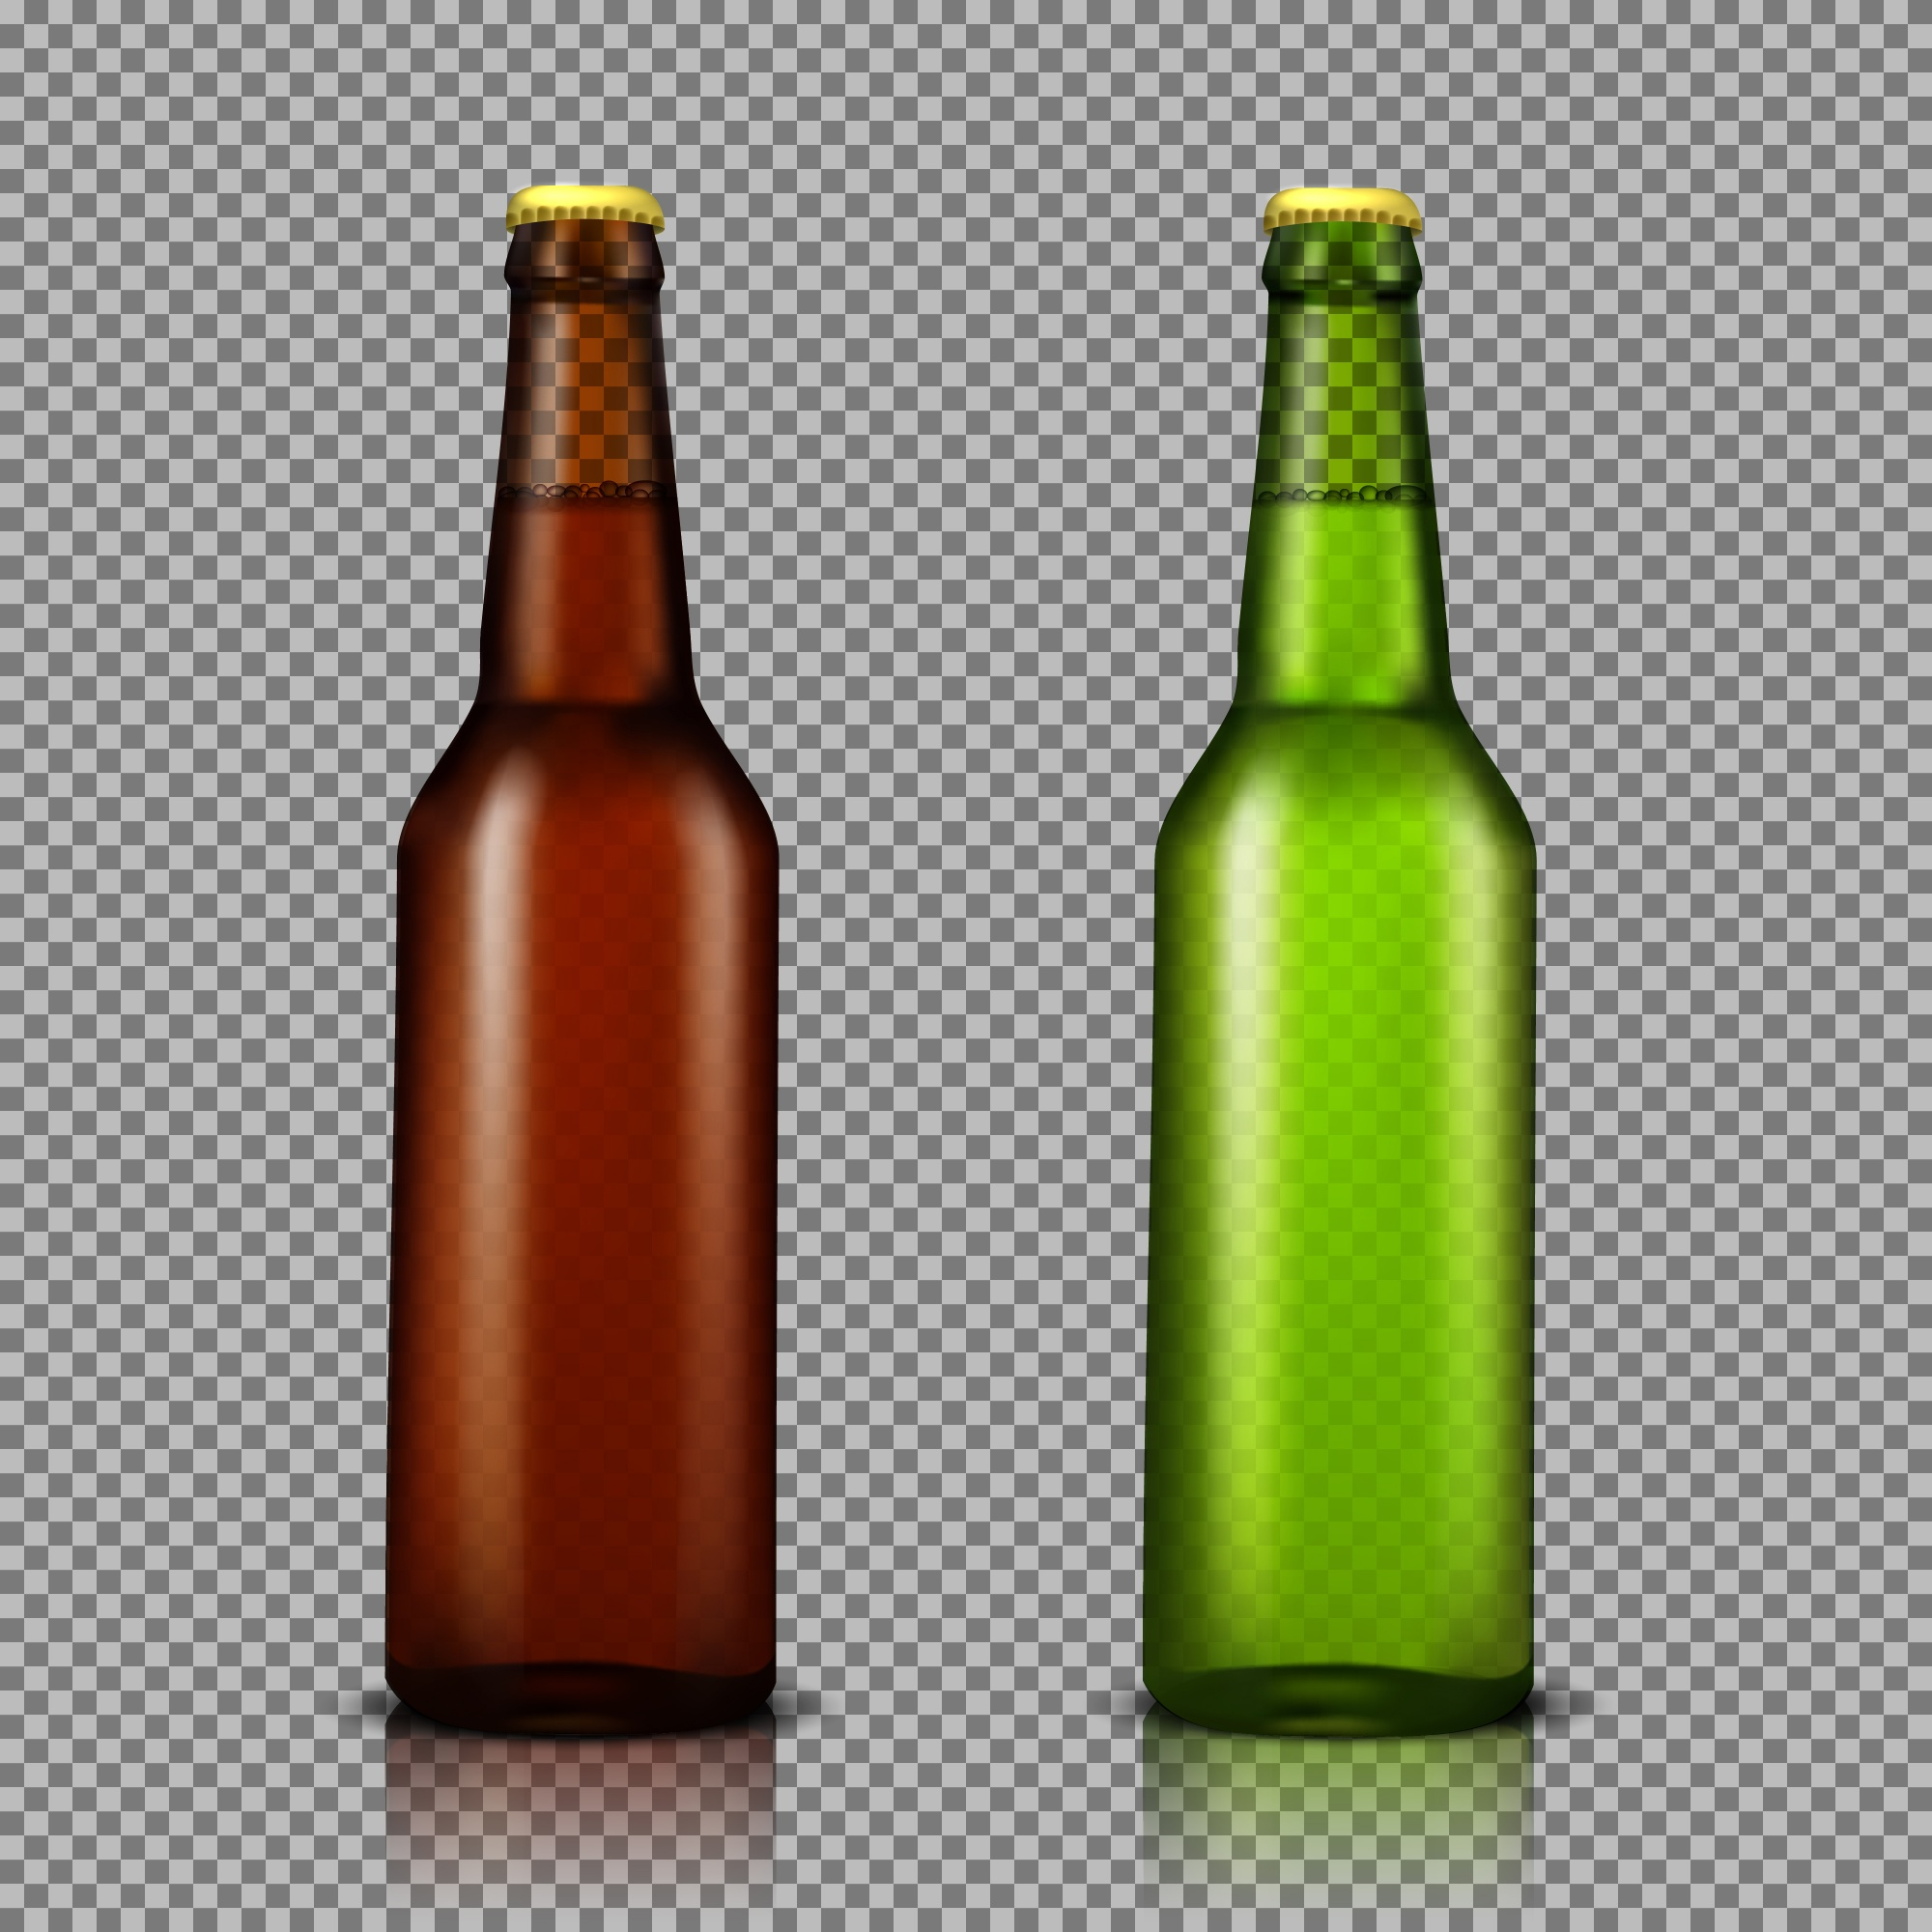 Vector realistic illustration set of transparent glass bottles with drinks, ready for branding